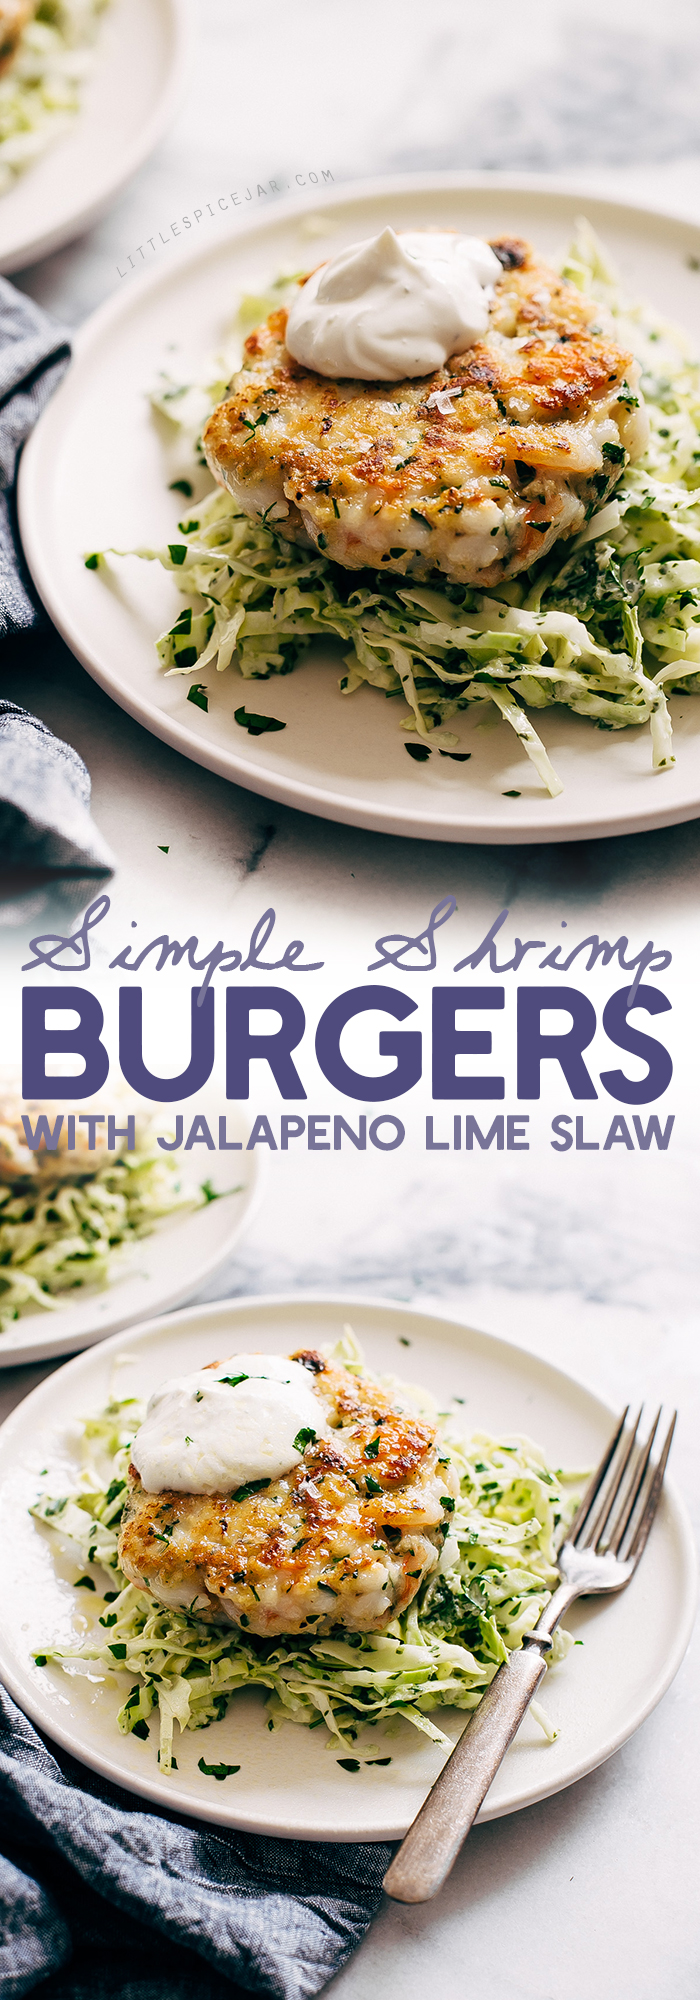 Simple Shrimp Burgers with Jalapeño Lime Slaw - these burgers take in the ballpark of 30 minutes to make. You can serve them on a bed of jalapeño lime slaw or on a brioche bun! Simple, healthy, and delicious! #seafood #shrimp #shrimpburgers #dinner #slaw | Littlespicejar.com